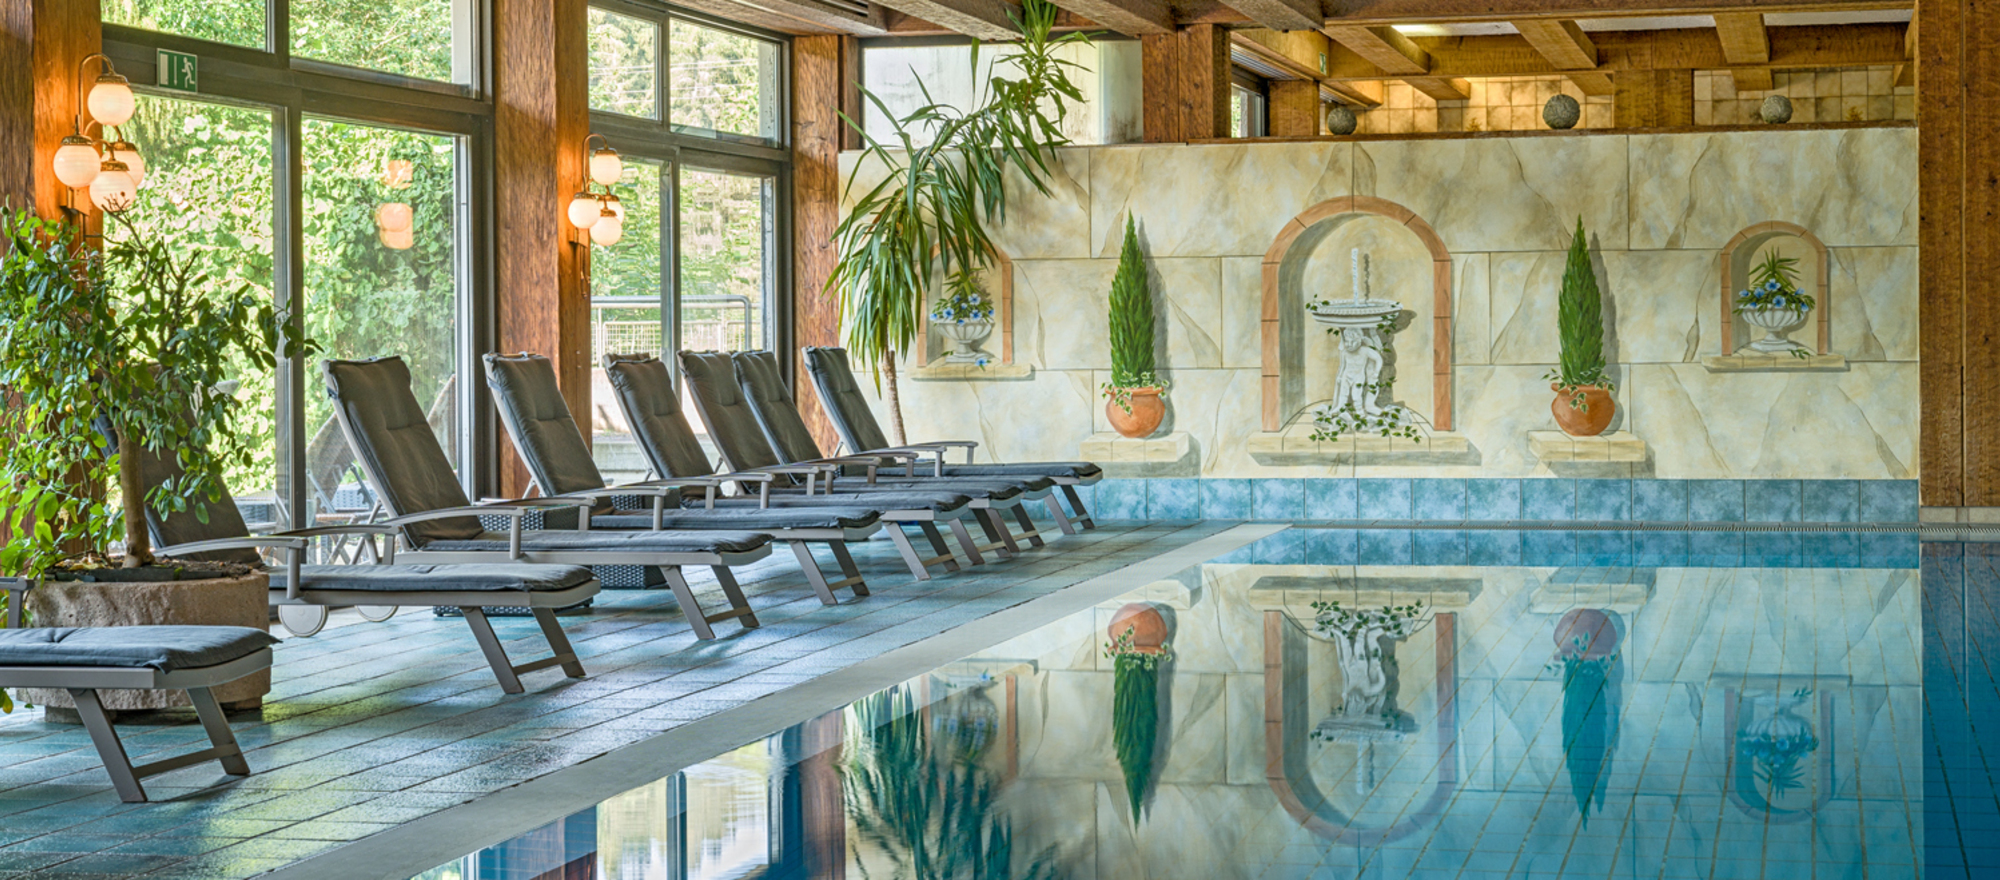 Relaxing by visiting the spa facilities at the 4-star Ringhotel Moenchs Waldhotel in Unterreichenbach